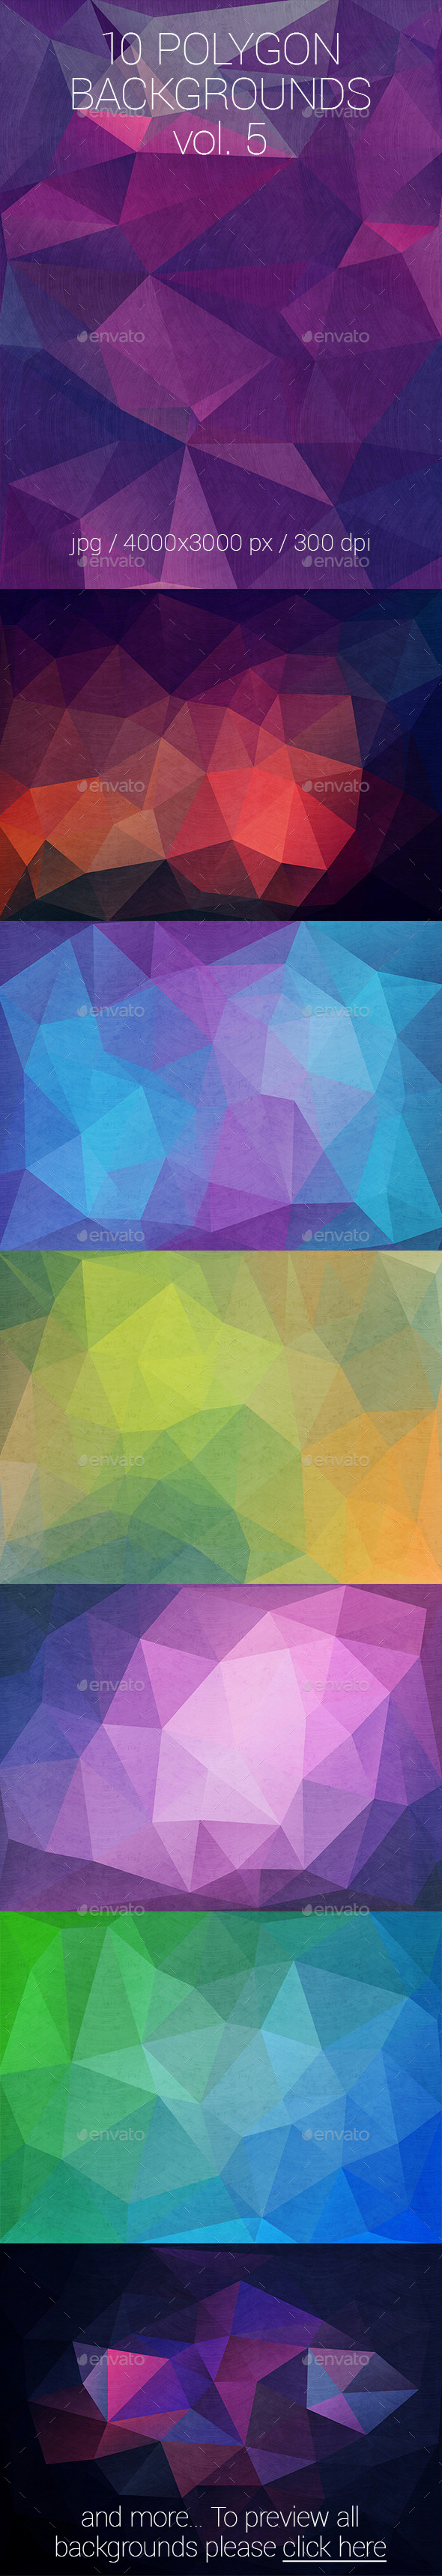 GraphicRiver 10 Polygon Backgrounds Vol 5 10374731